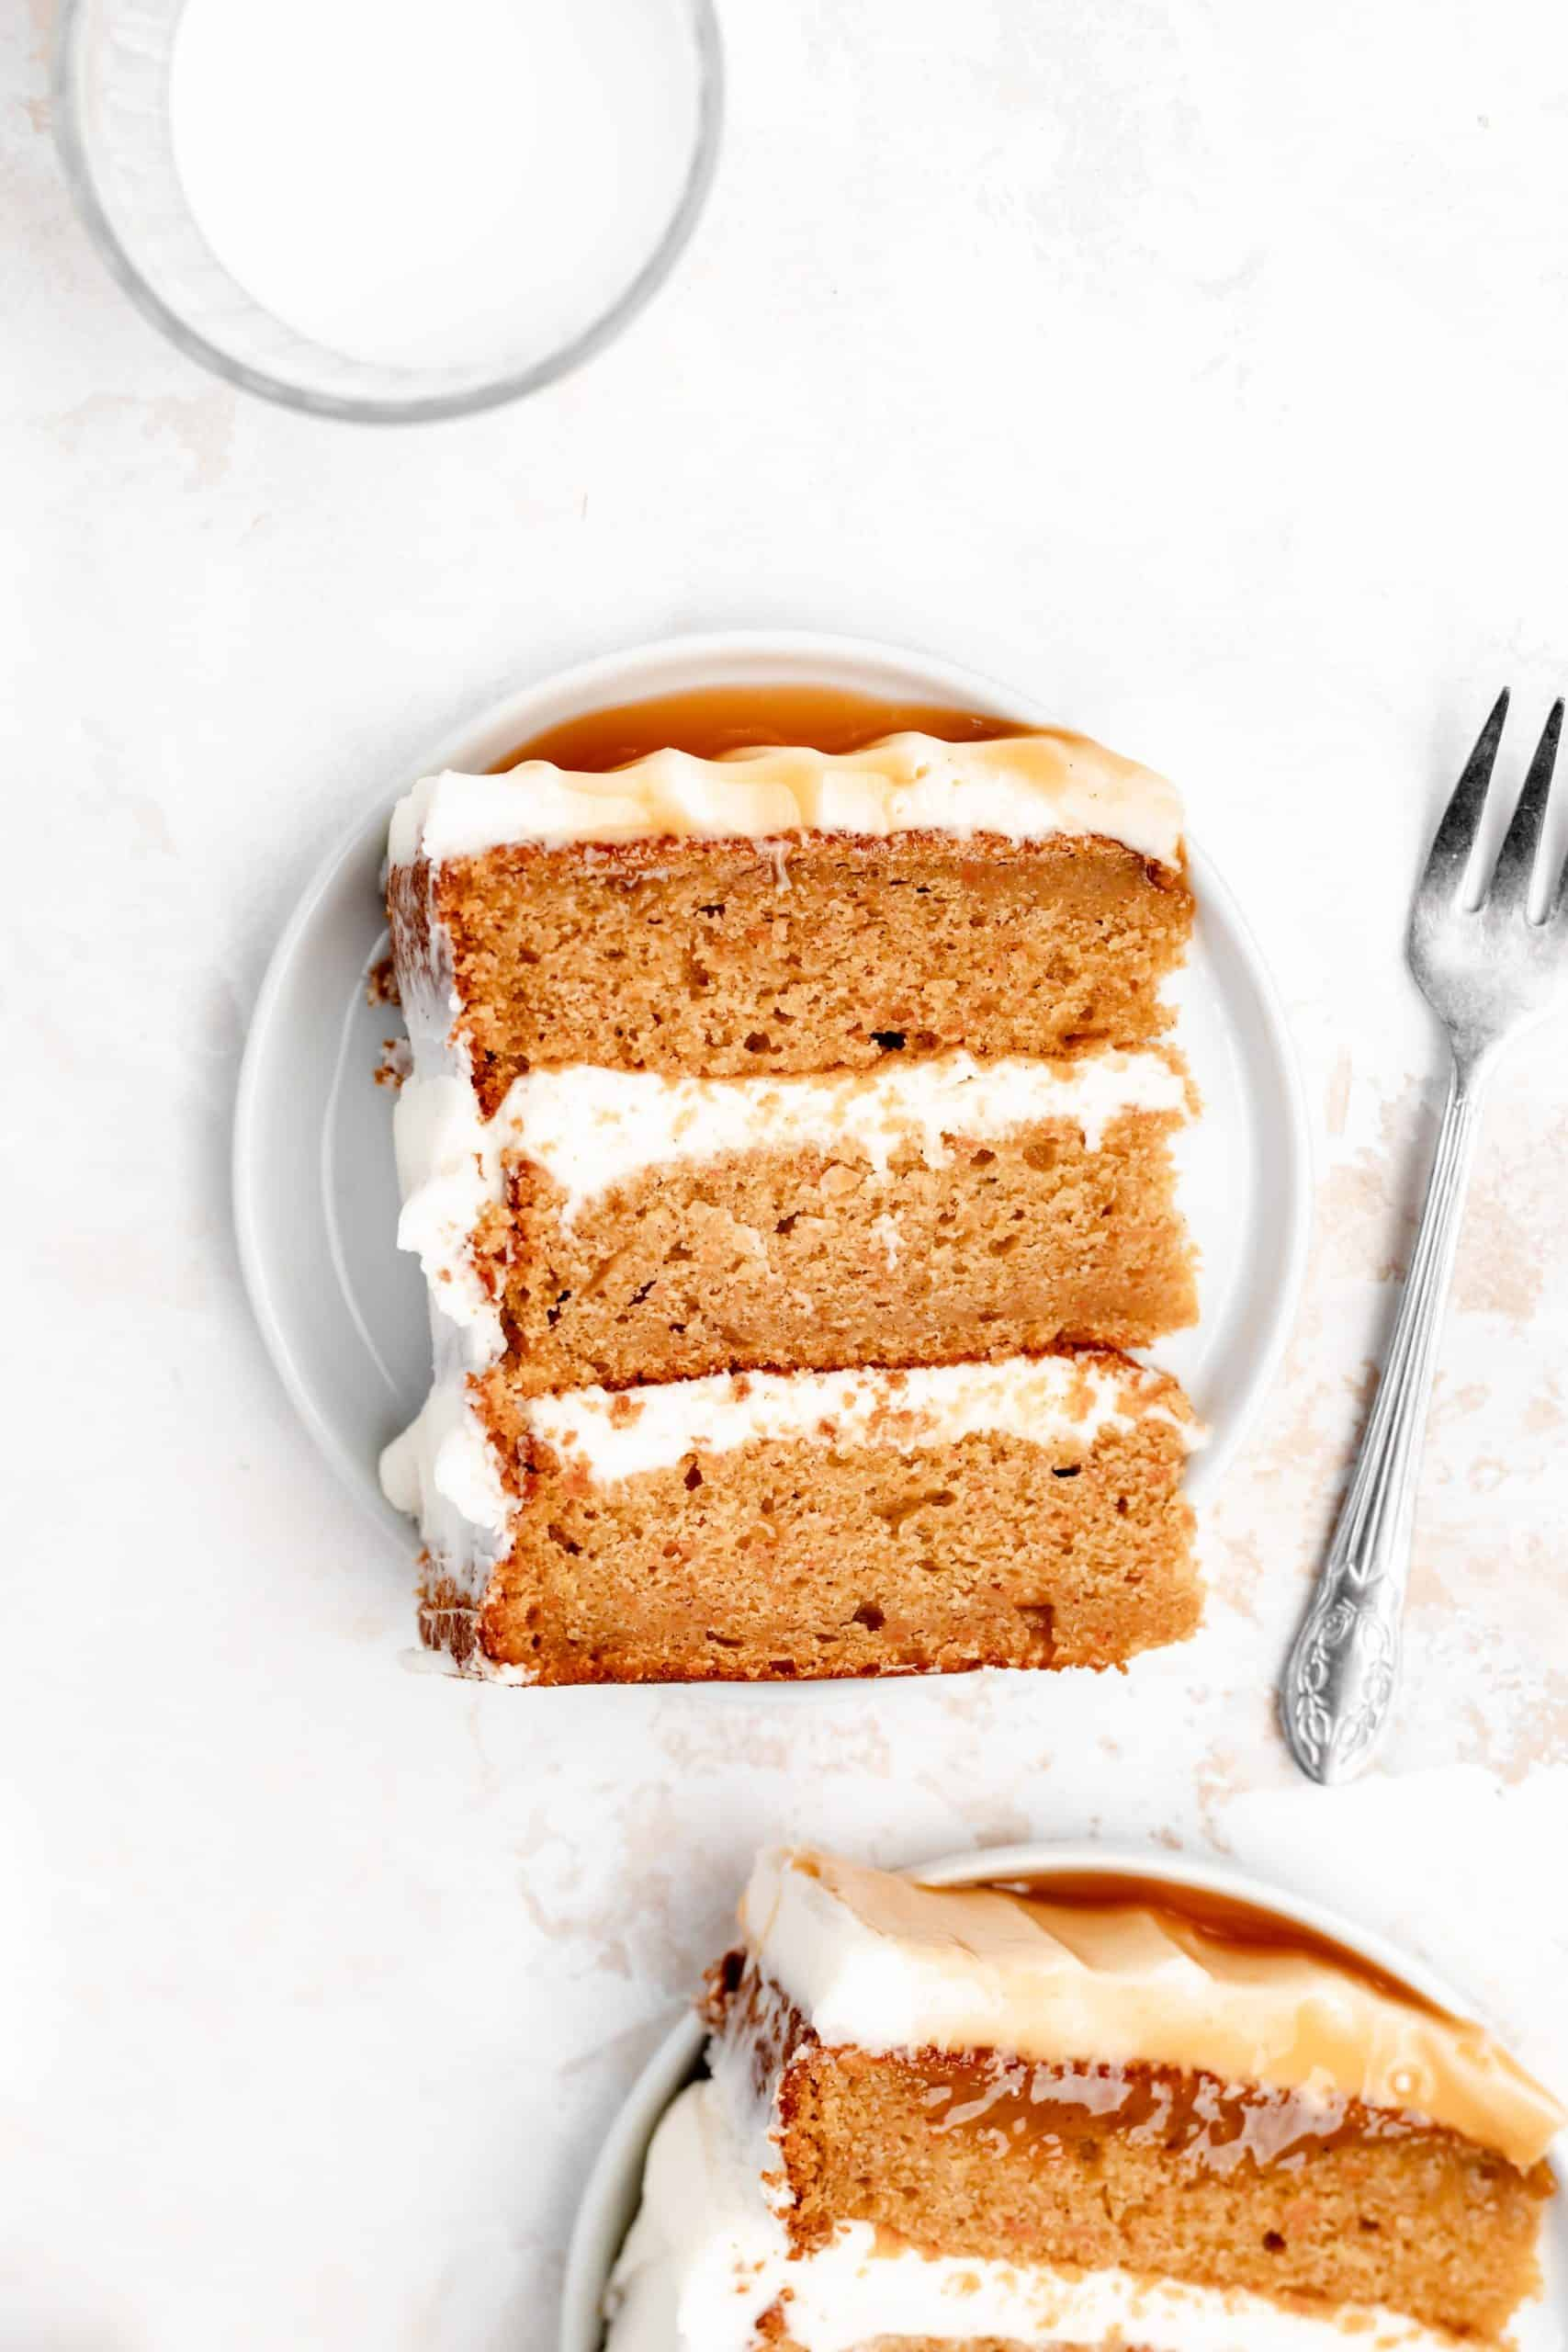 Slice of moist carrot cake with cream cheese frosting on a plate